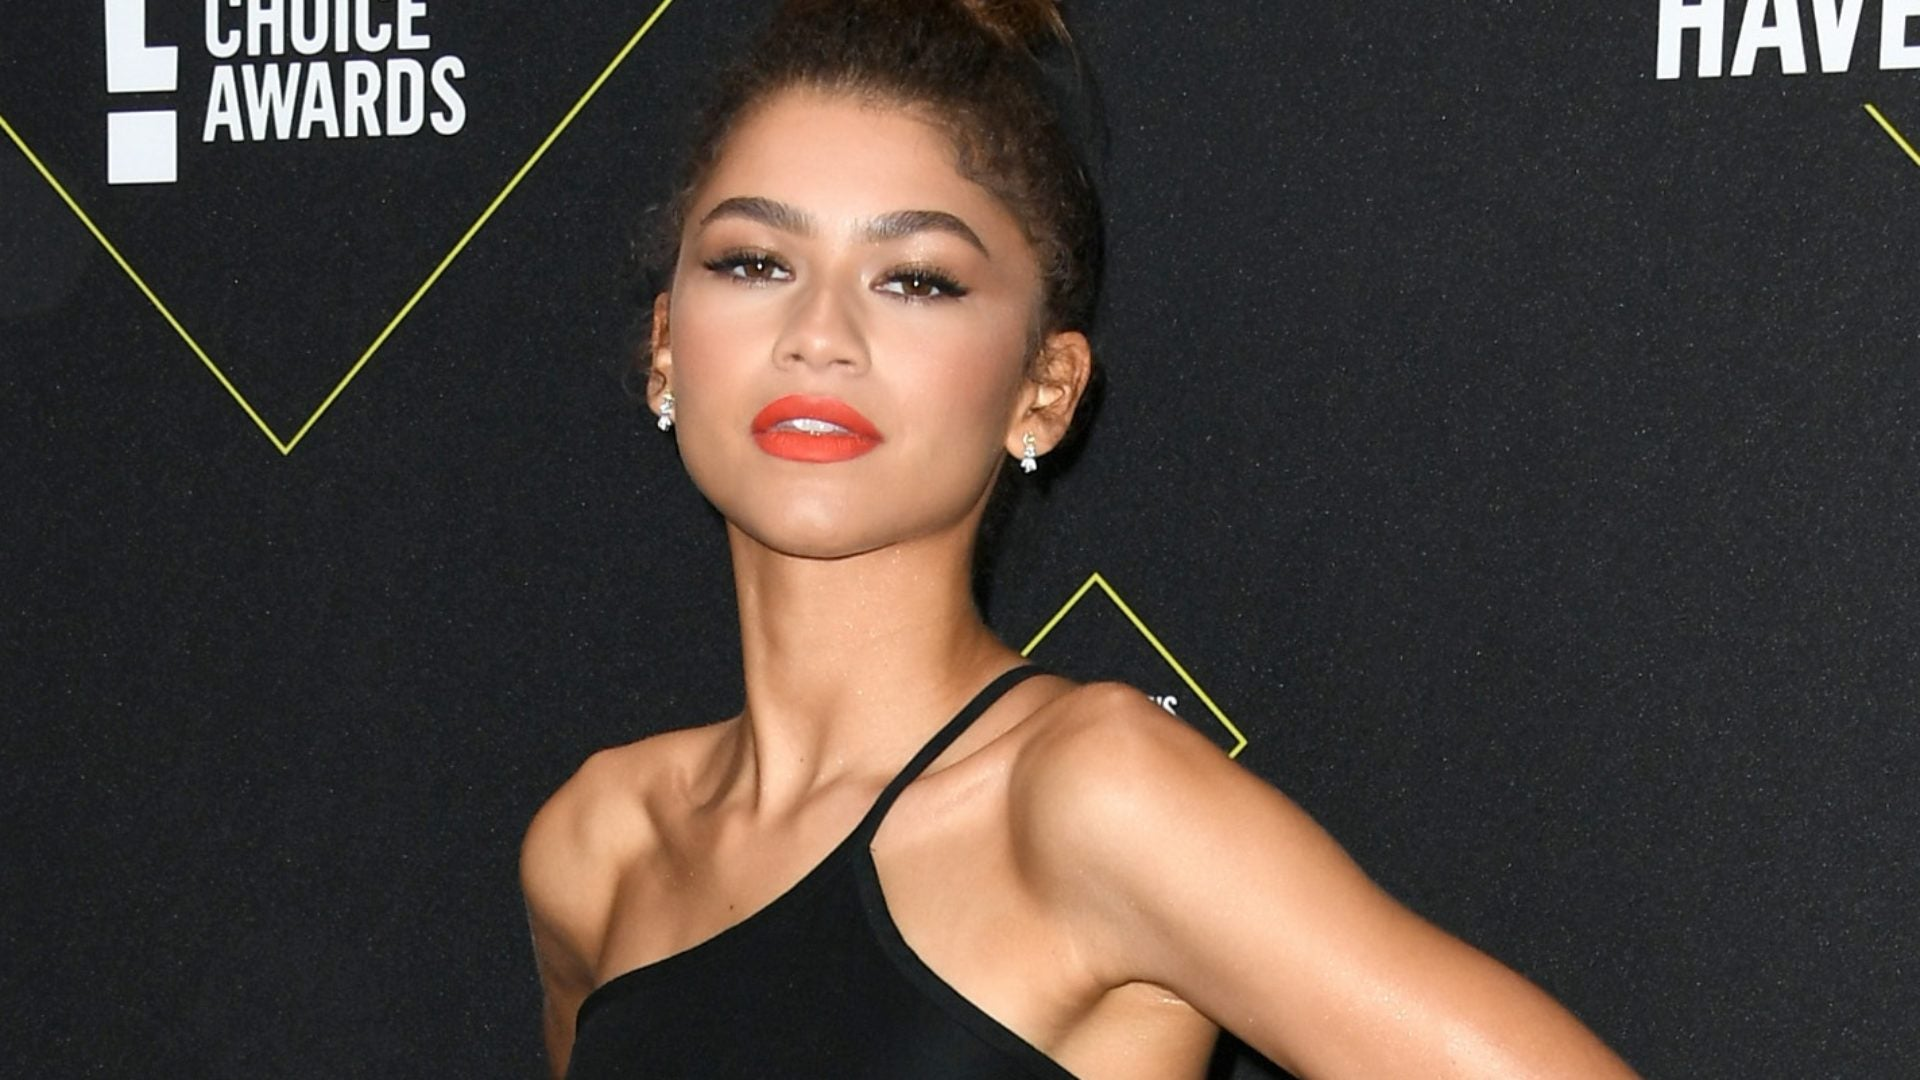 The Best Dressed From The 2019 E! People's Choice Awards